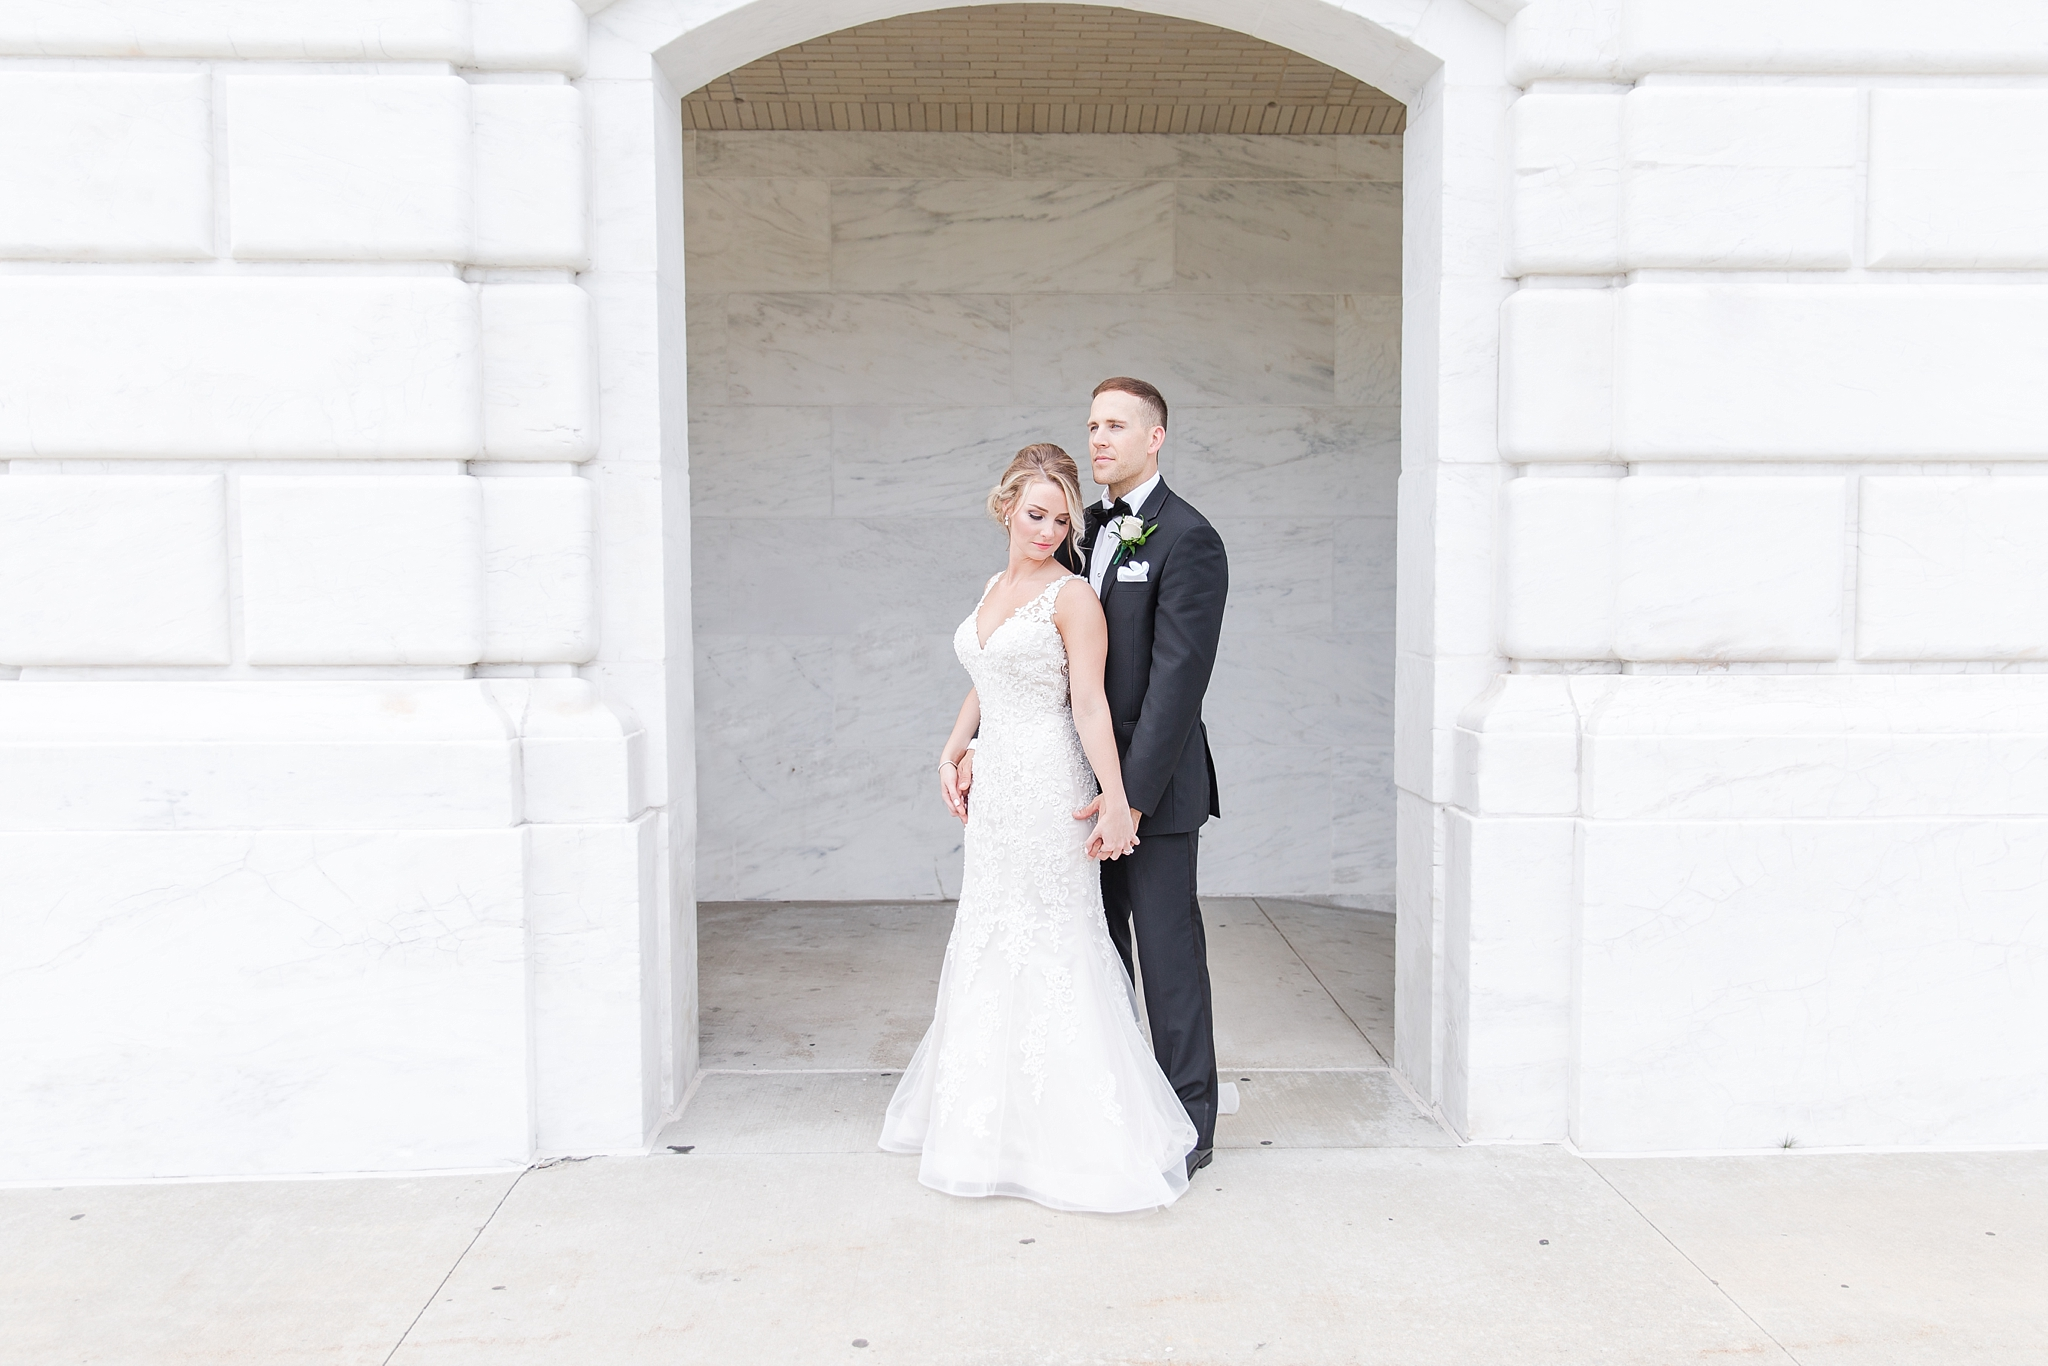 candid-romantic-wedding-photos-at-the-masonic-temple-belle-isle-detroit-institute-of-arts-in-detroit-michigan-by-courtney-carolyn-photography_0058.jpg